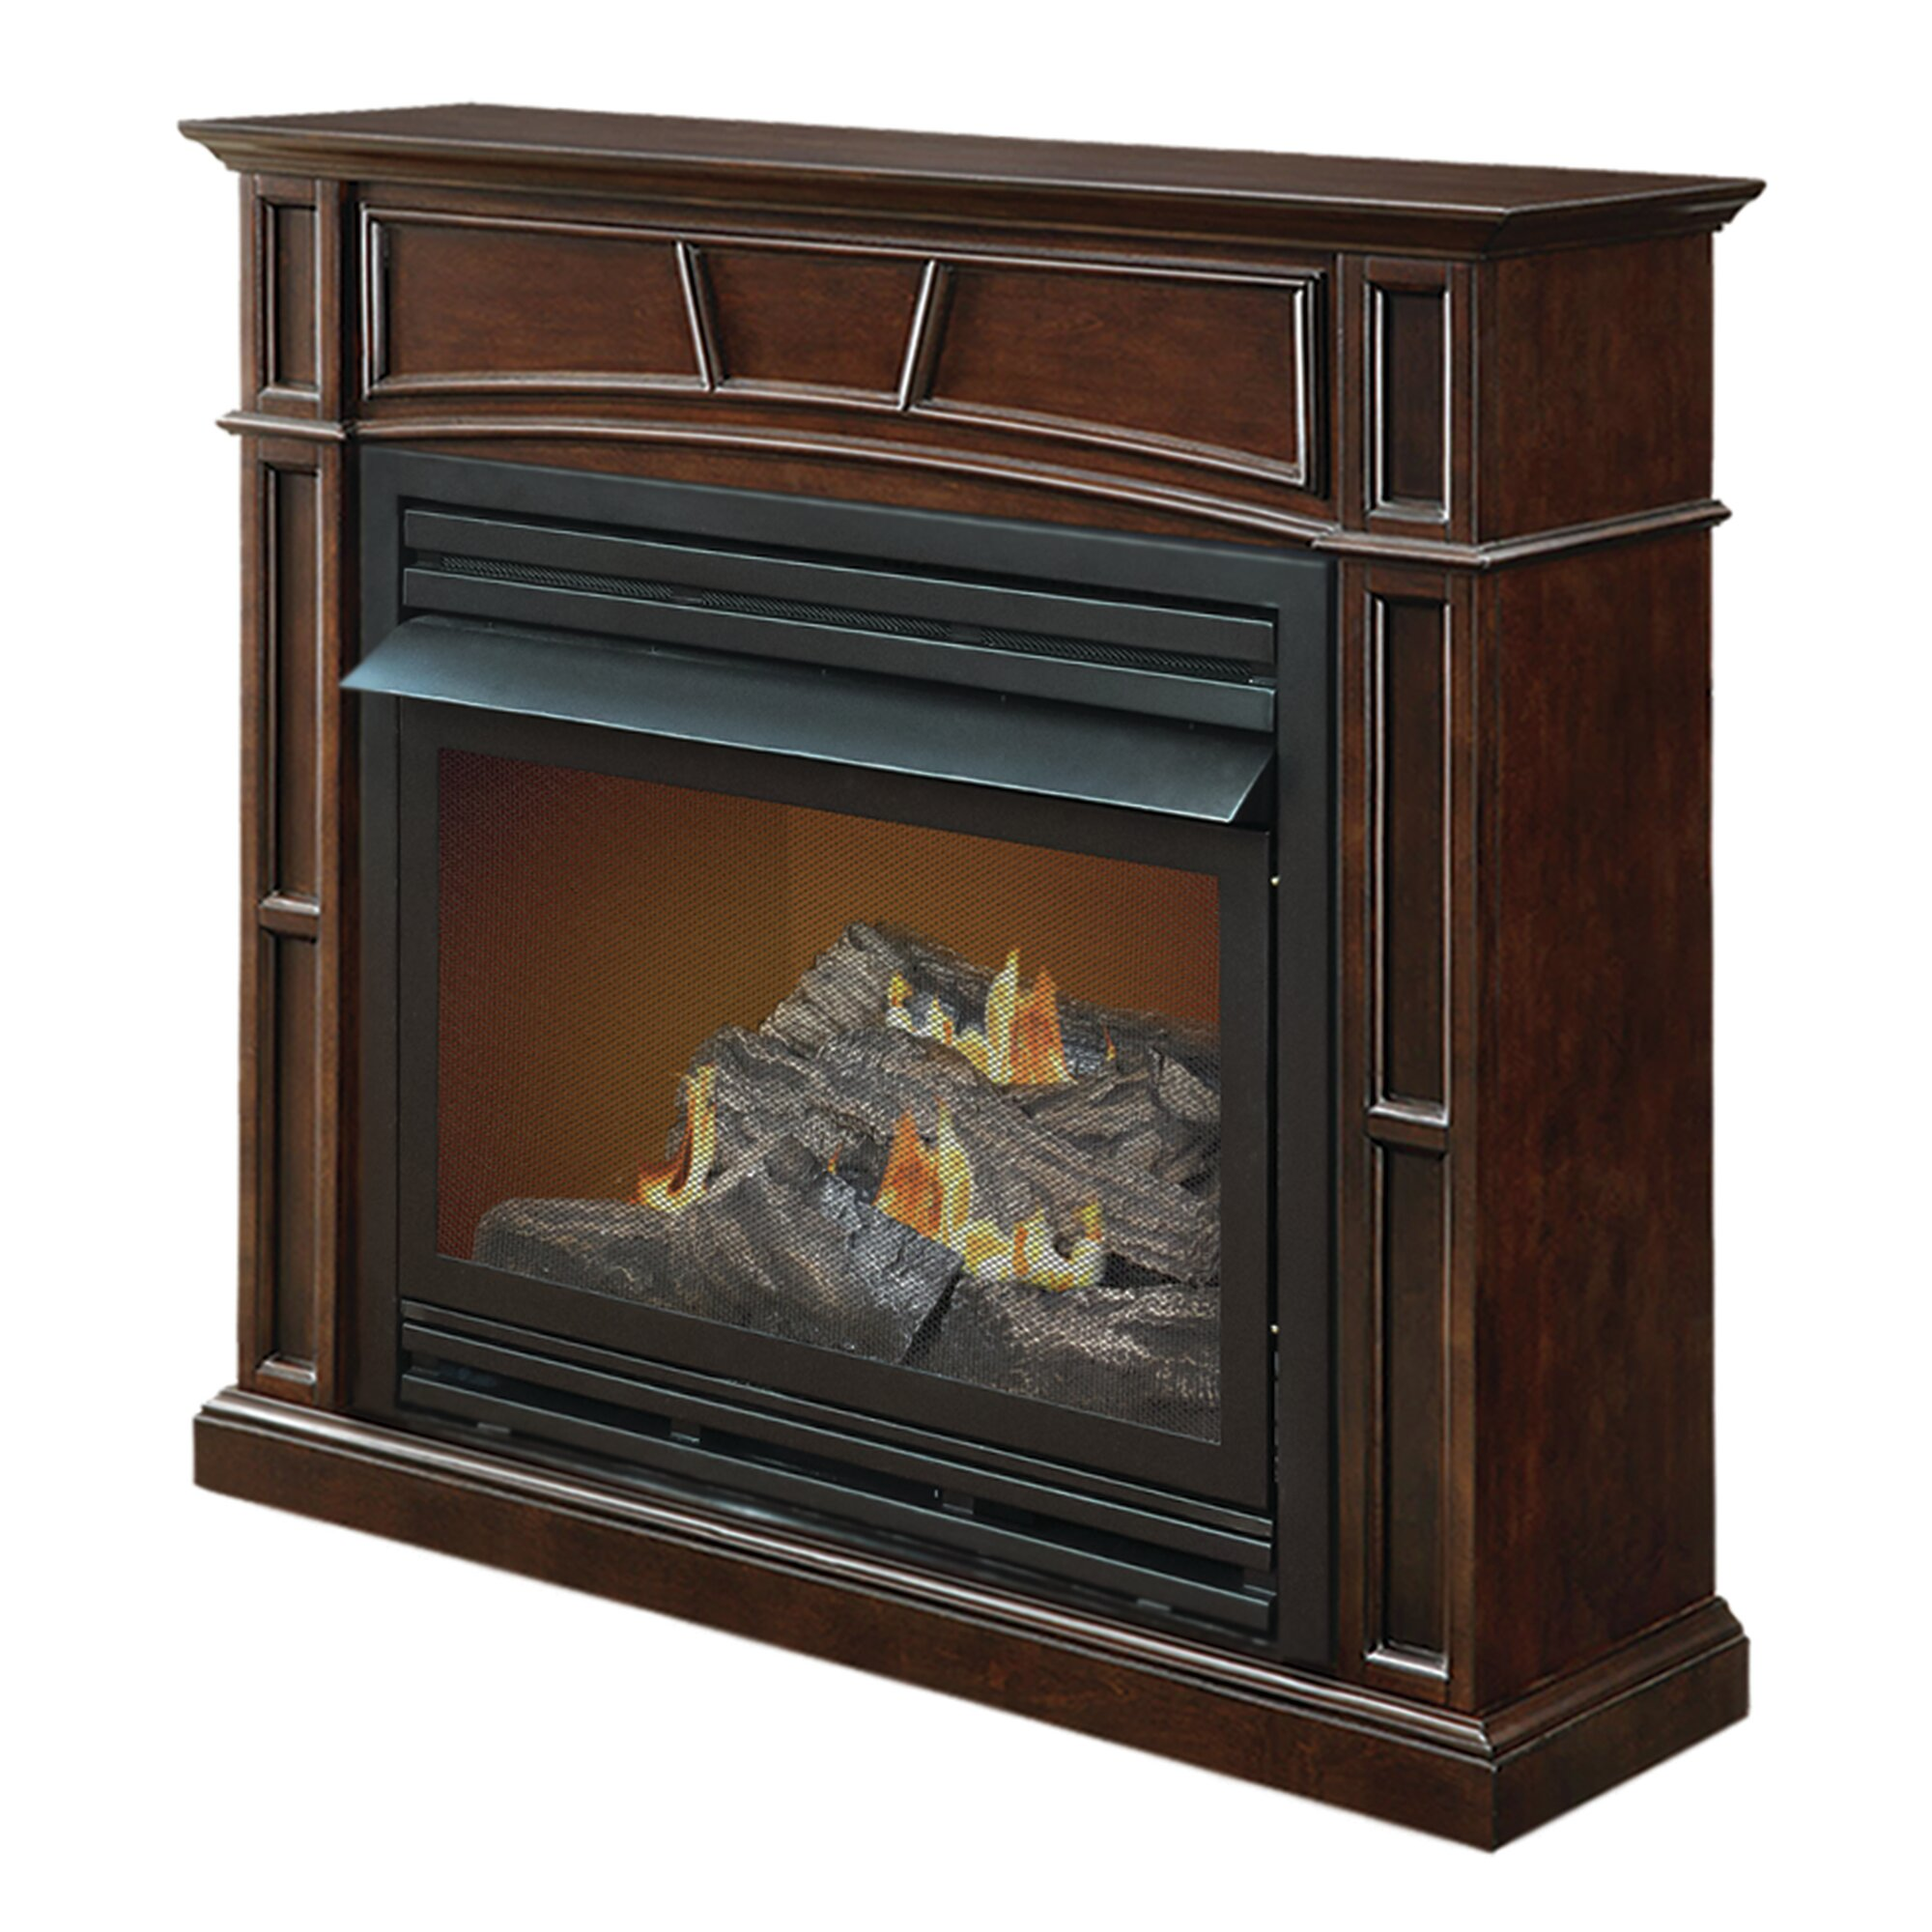 pleasant hearth size vent free dual fuel gas